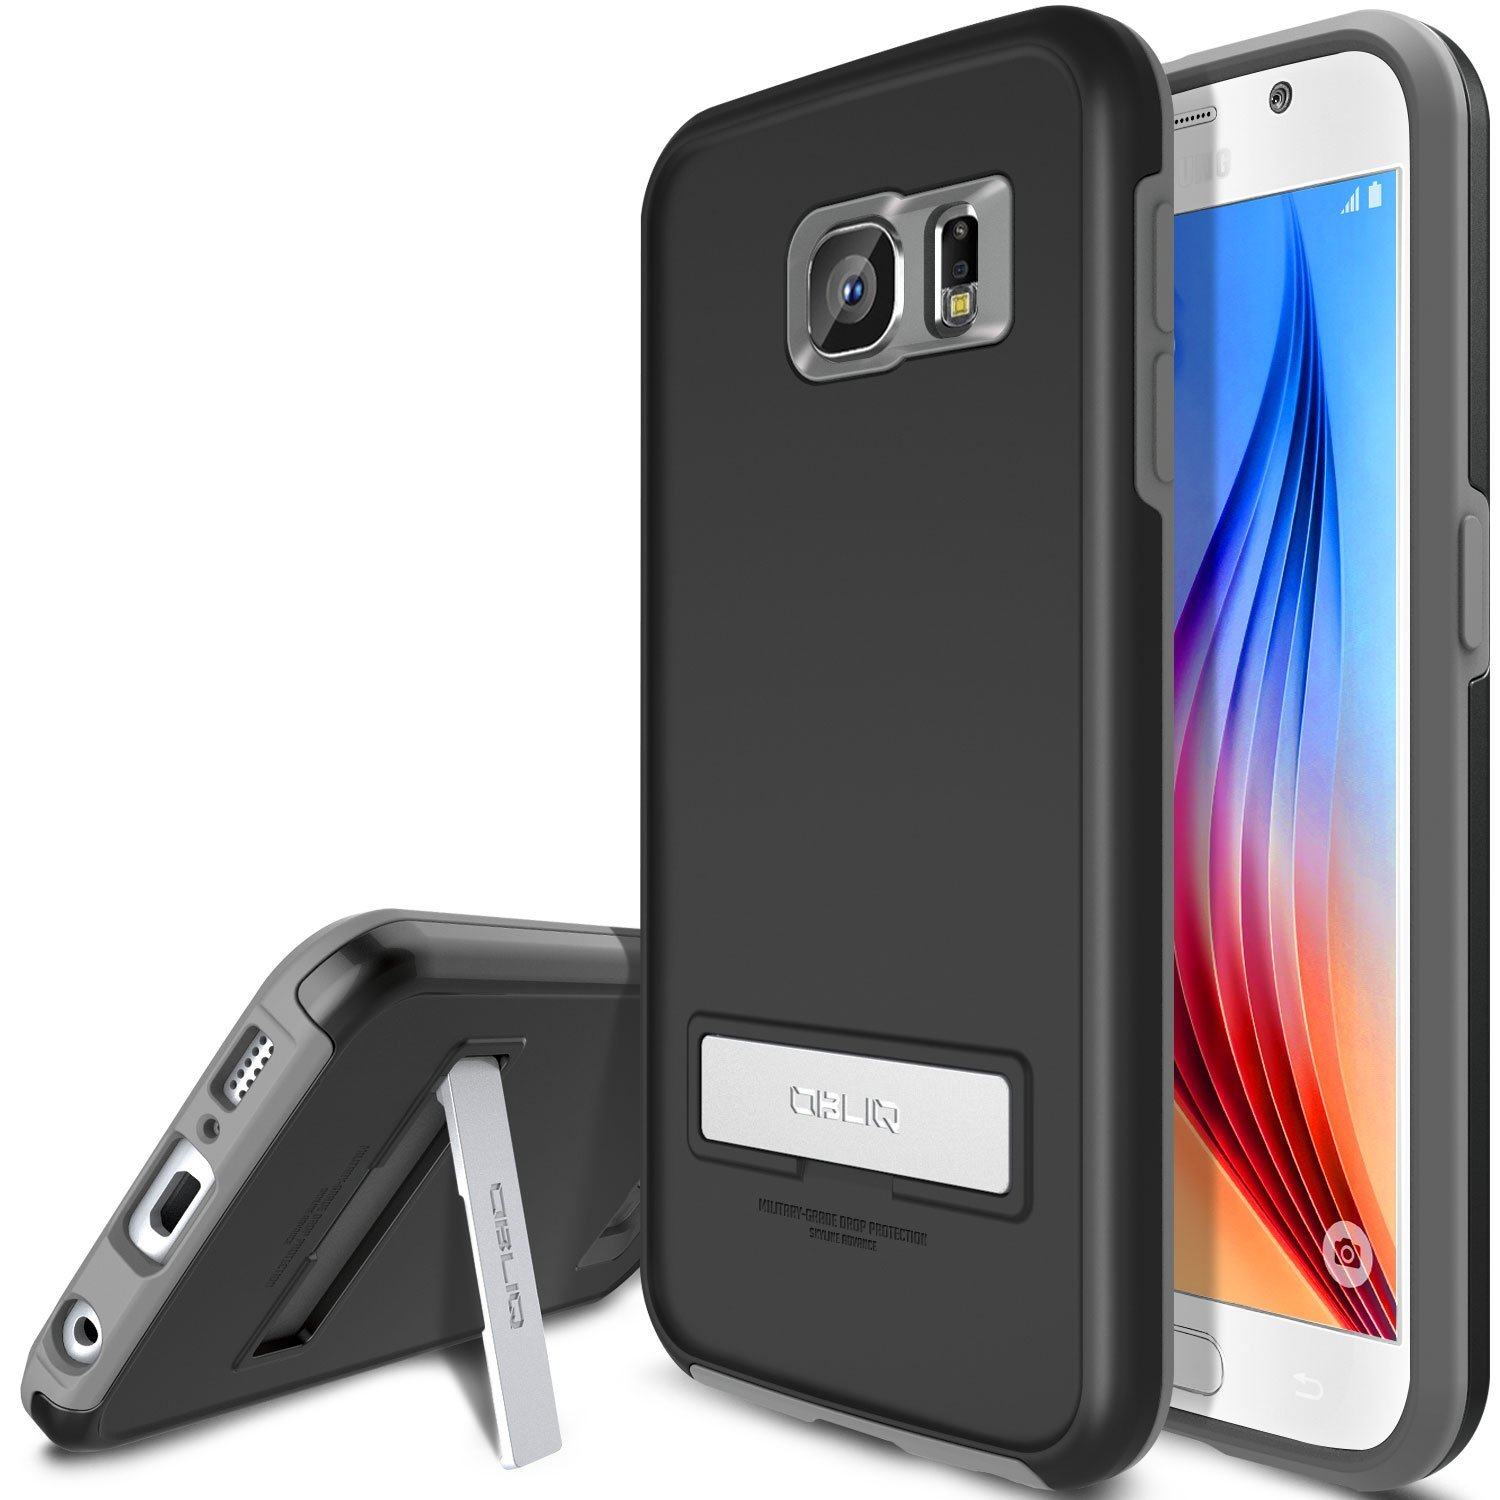 s6 cases, best s6 cases, cheap s6 cases, samsung galaxy s6 cases